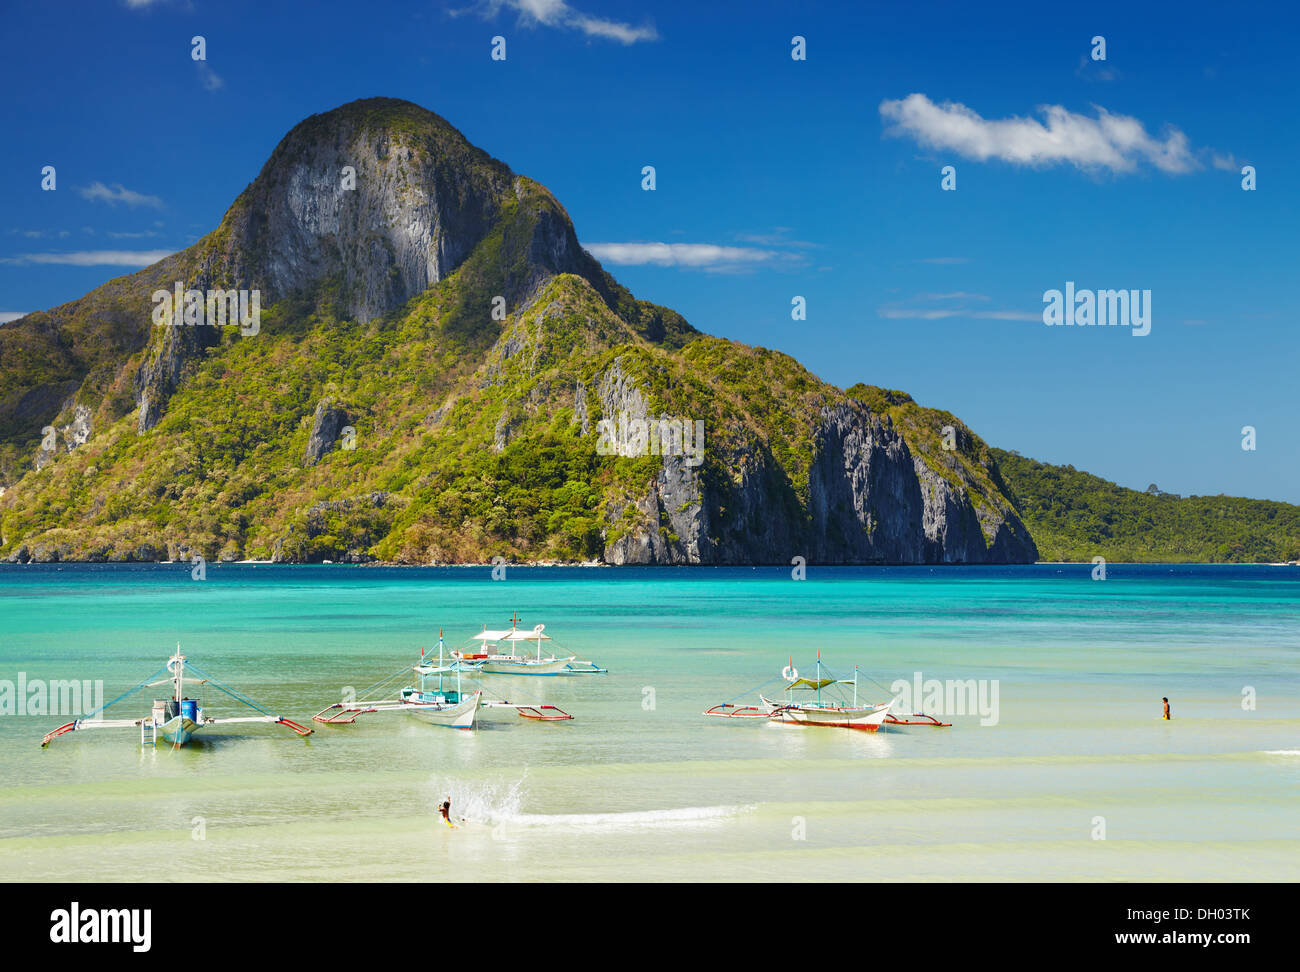 El Nido bay and Cadlao island, Palawan, Philippines - Stock Image